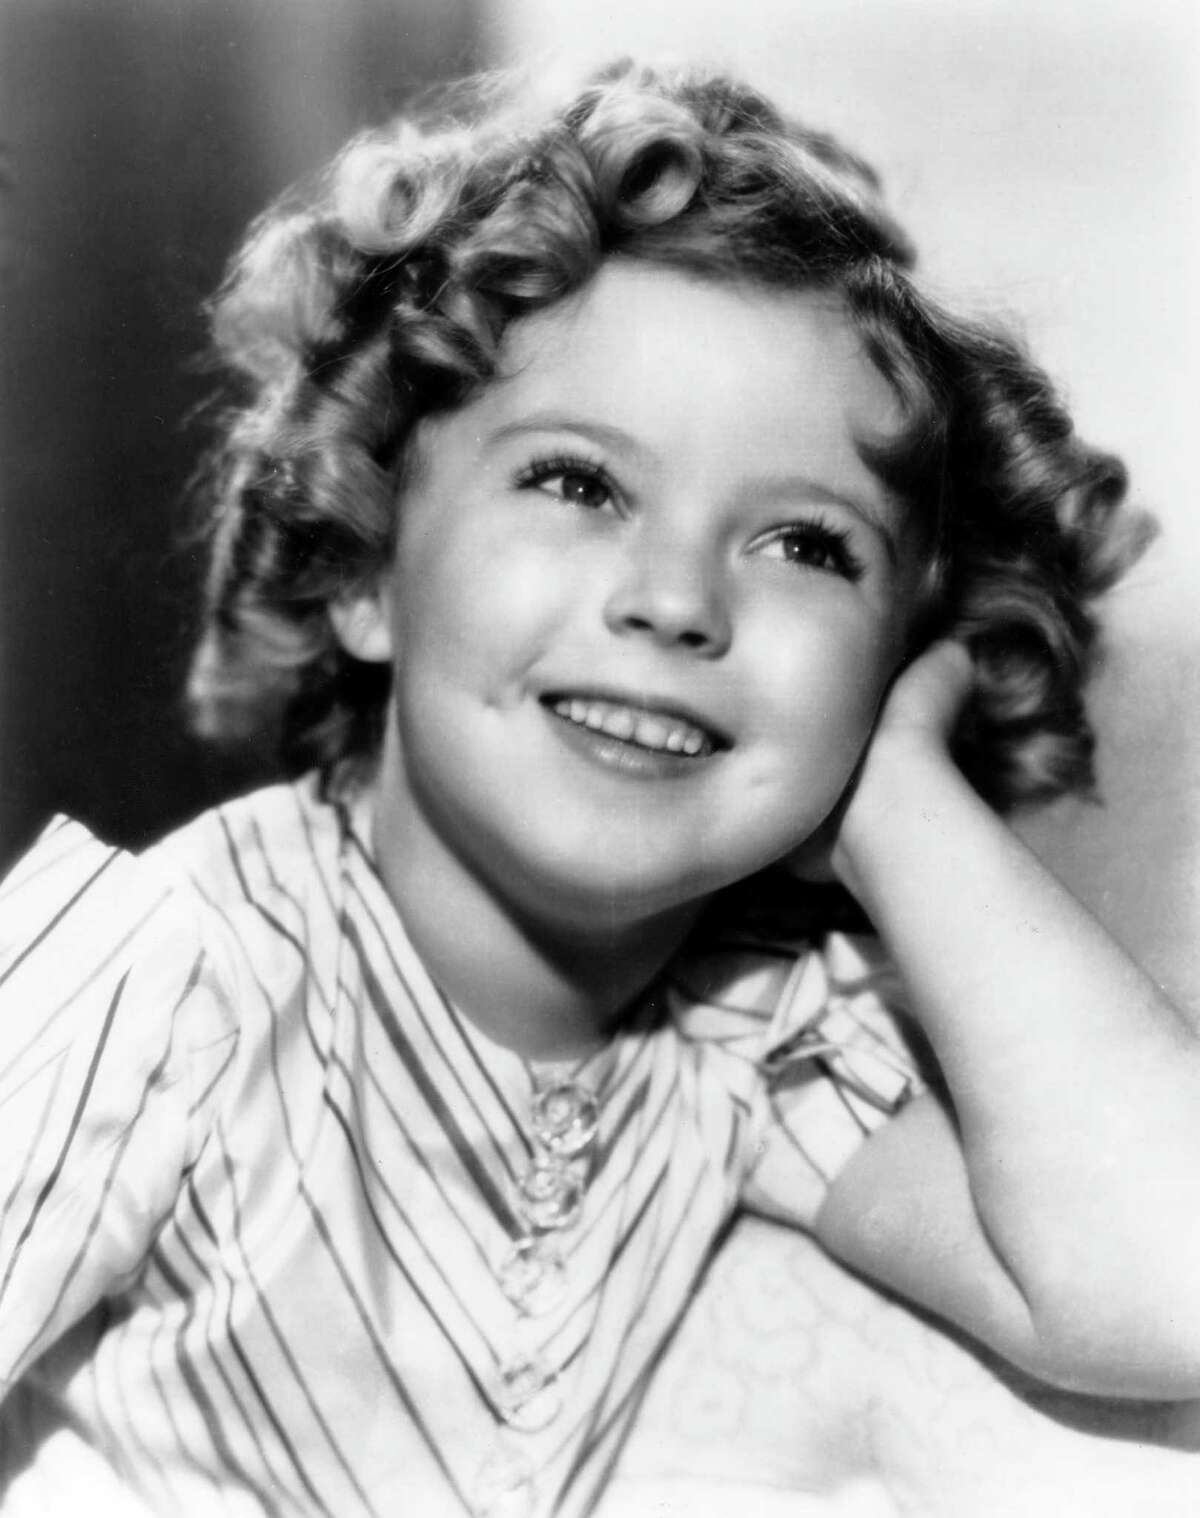 Star power Shirley Temple's smile lit up movie screens in the 1930s.